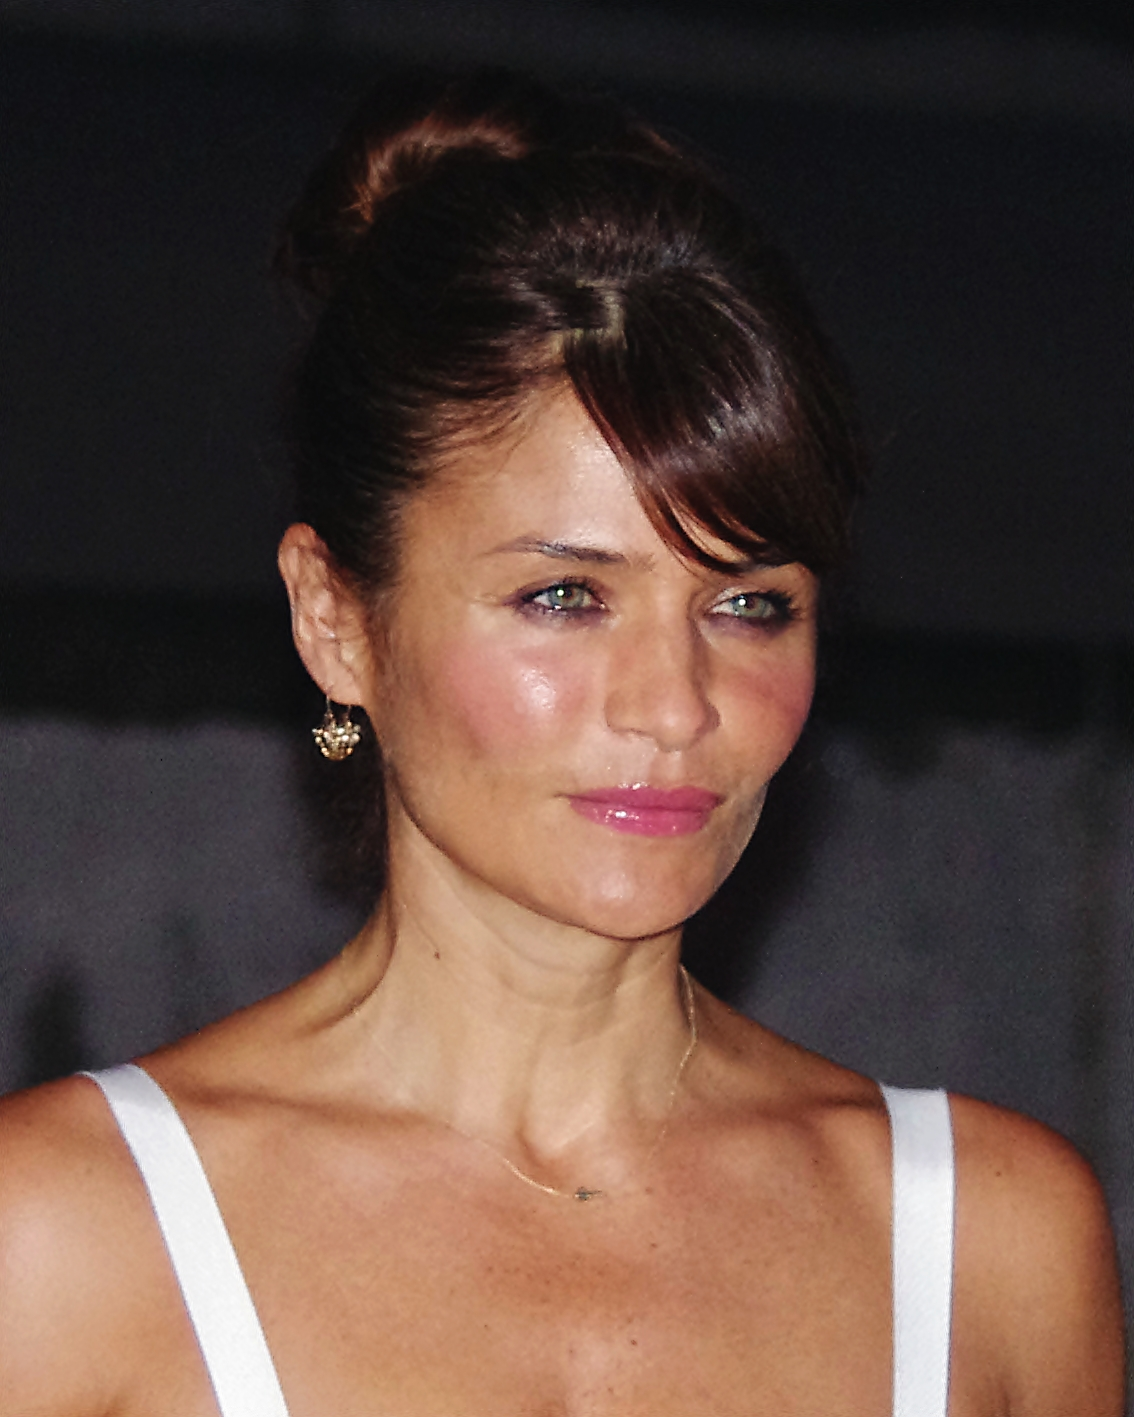 The 49-year old daughter of father (?) and mother(?) Helena Christensen in 2018 photo. Helena Christensen earned a  million dollar salary - leaving the net worth at 8 million in 2018